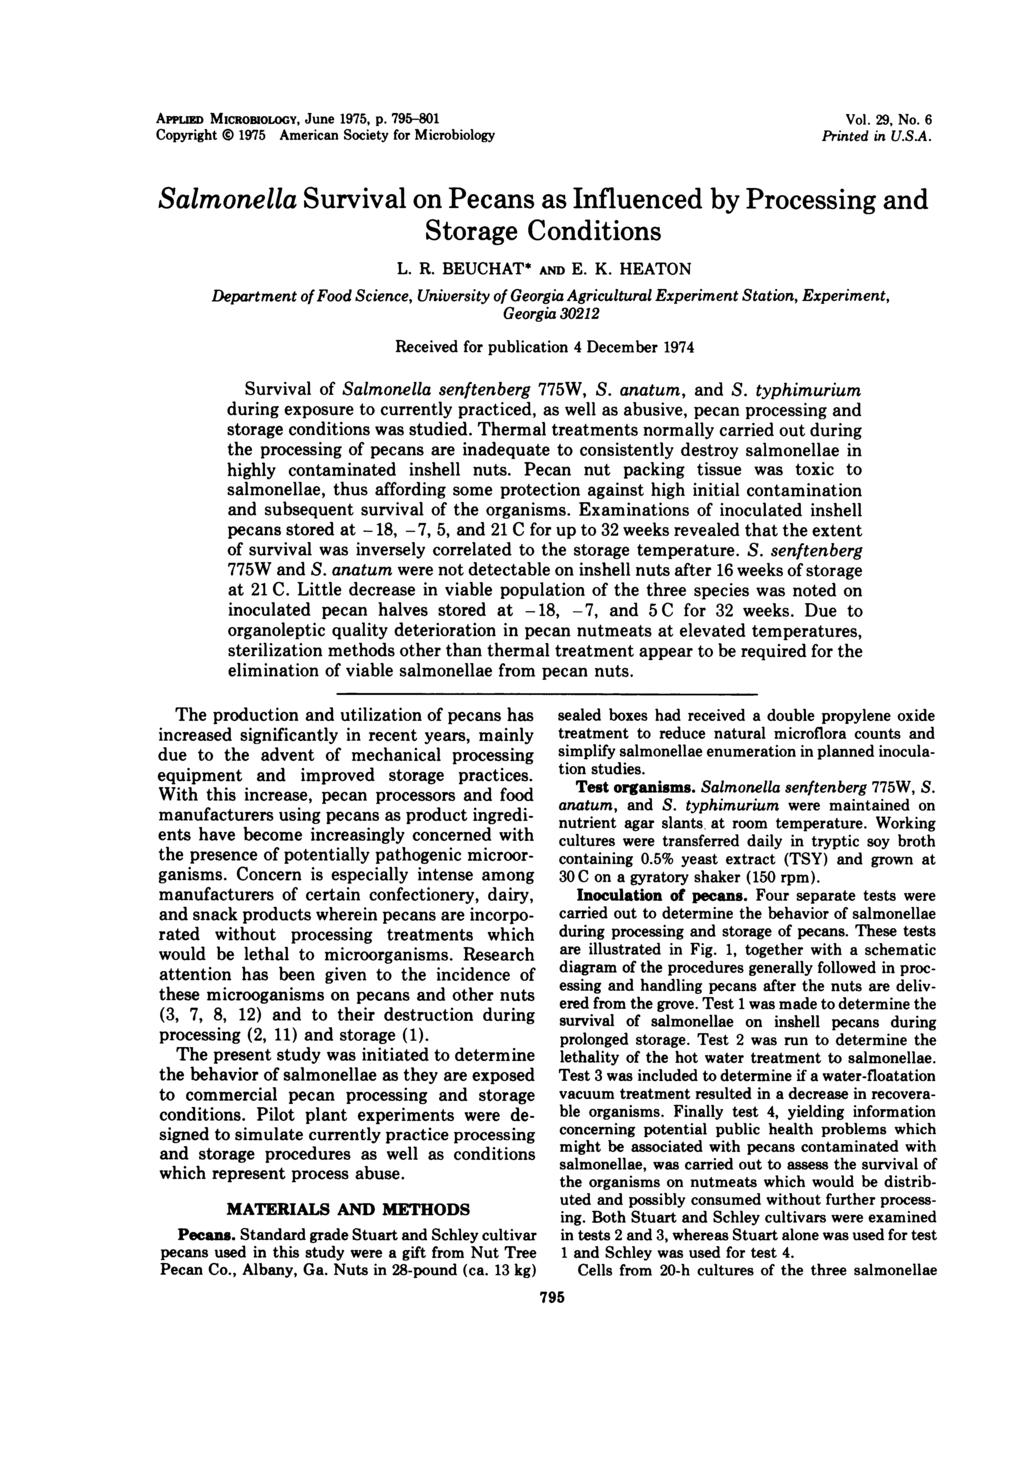 APPun MICROBIOLOGY, June 1975, p. 795-801 Copyright i 1975 American Society for Microbiology Vol. 29, No. 6 Printed in U.S.A. Salmonella Survival on Pecans as Influenced by Processing and Storage Conditions L.